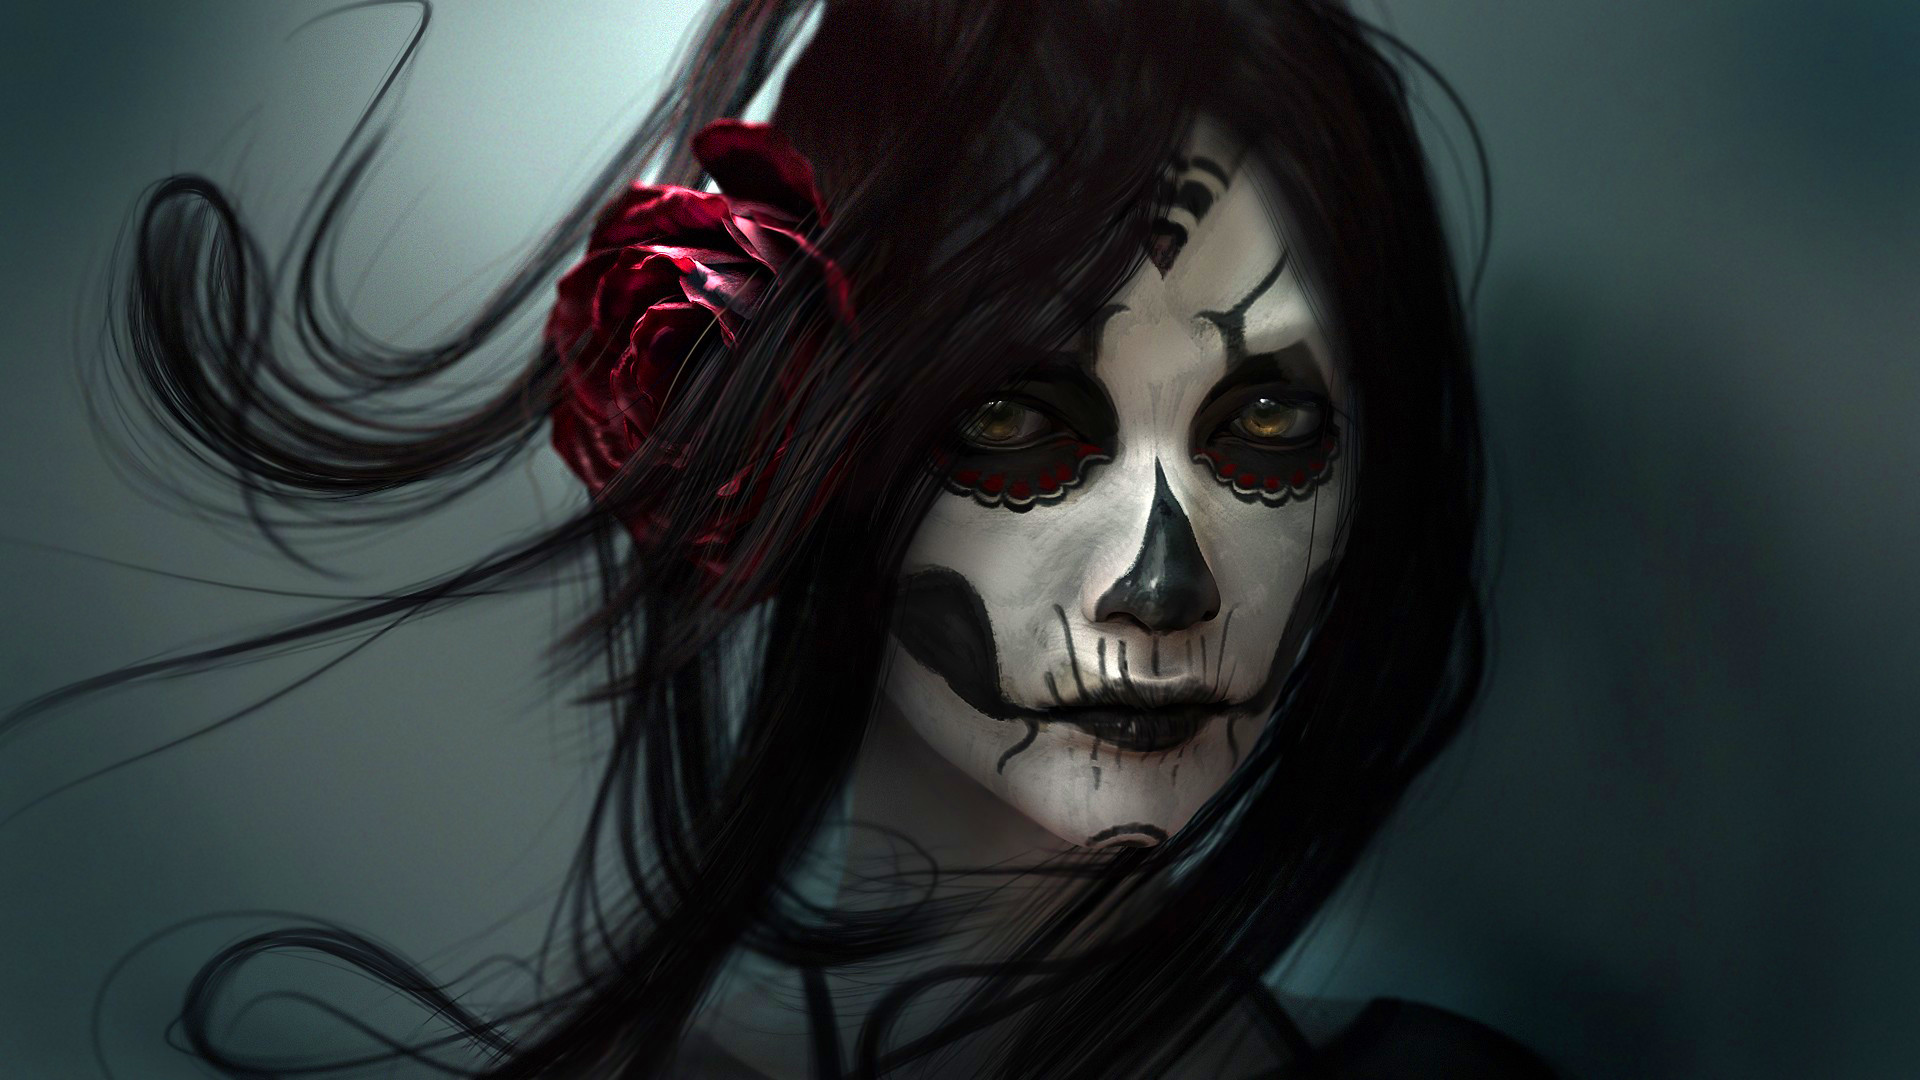 1920x1080 Skull Girl Wallpapers HD #5083 Wallpaper | Cool Walldiskpaper.com